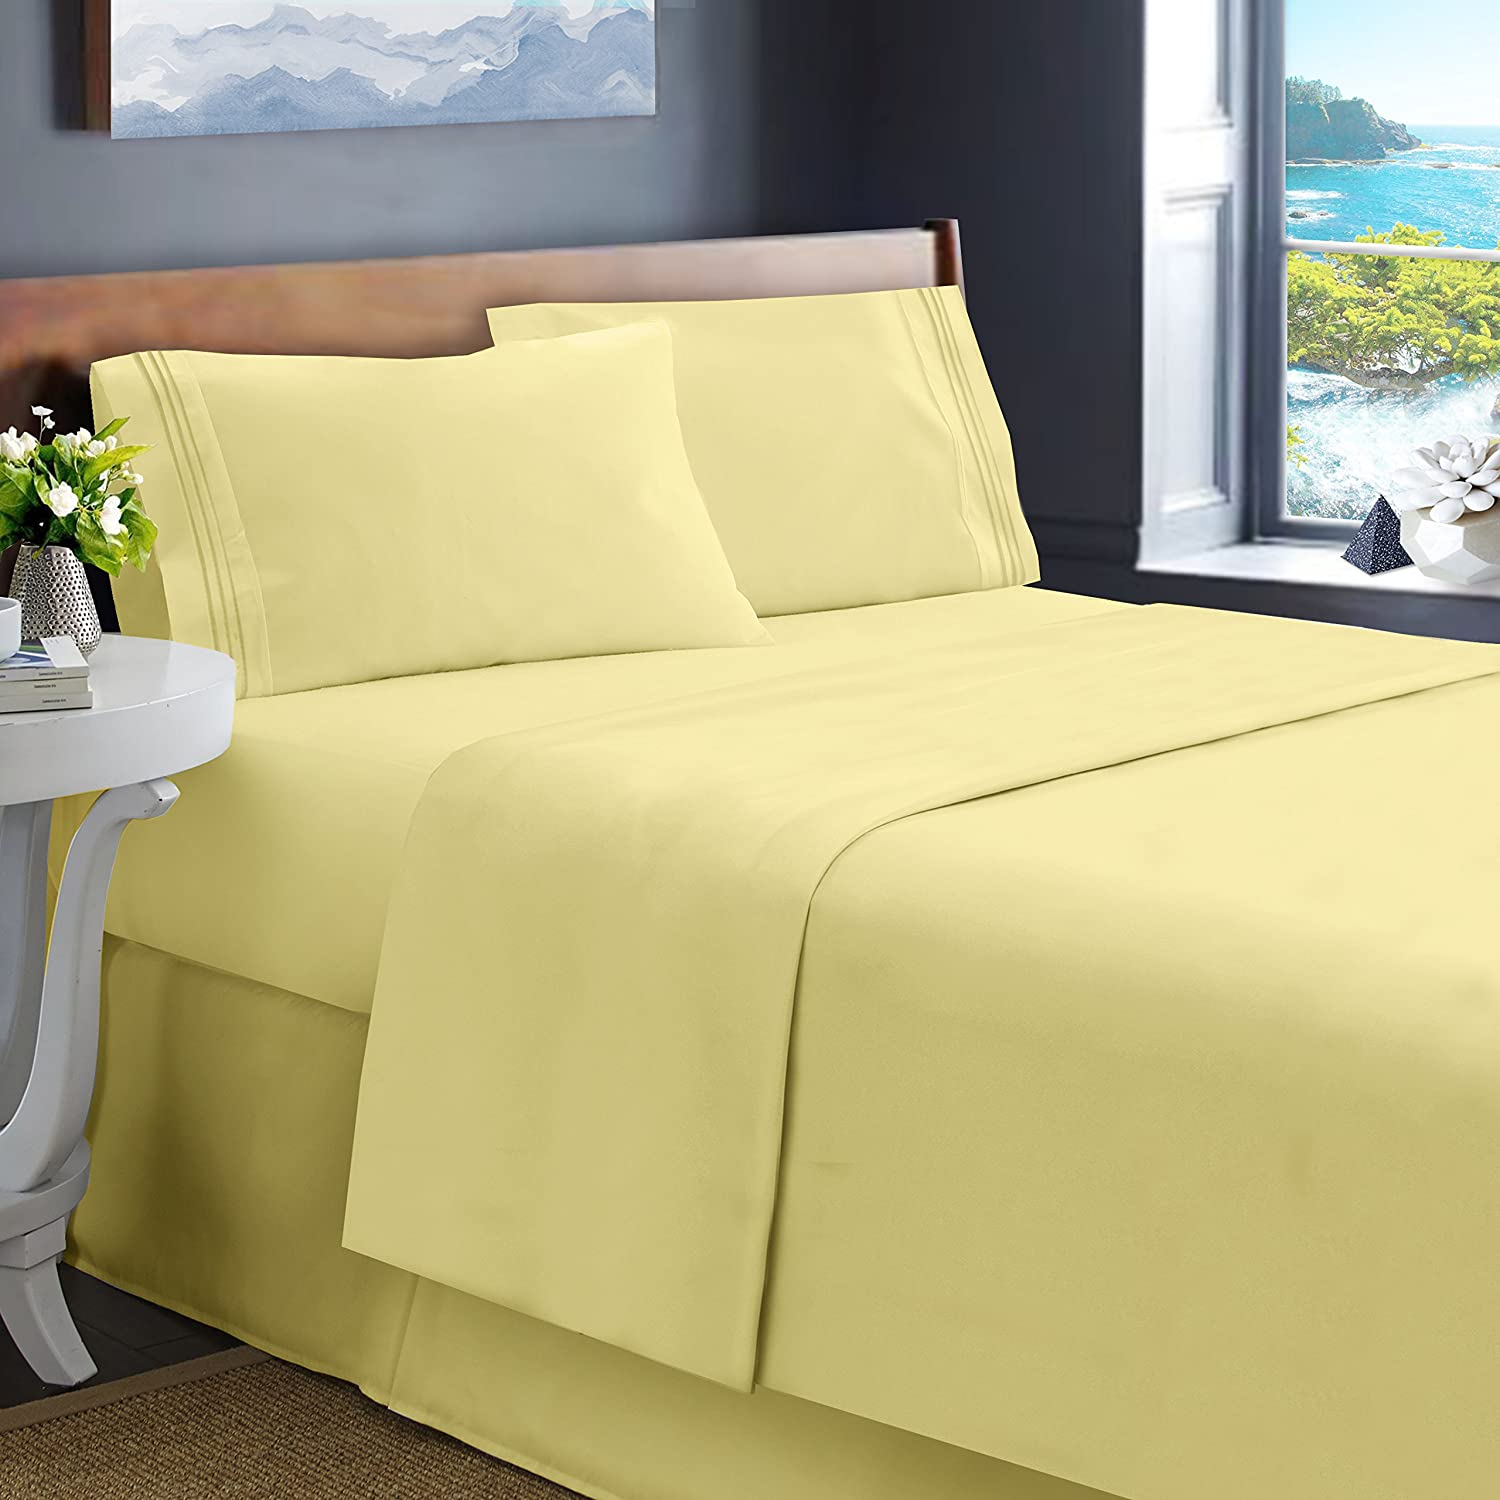 Mellow Yellow Harbor /& Hearth Size 4Piece Bed Sheet Set Best Quality Double Brushed Microfiber Sheets Queen Stain Resistant. Light Yellow - Wrinkle Fade